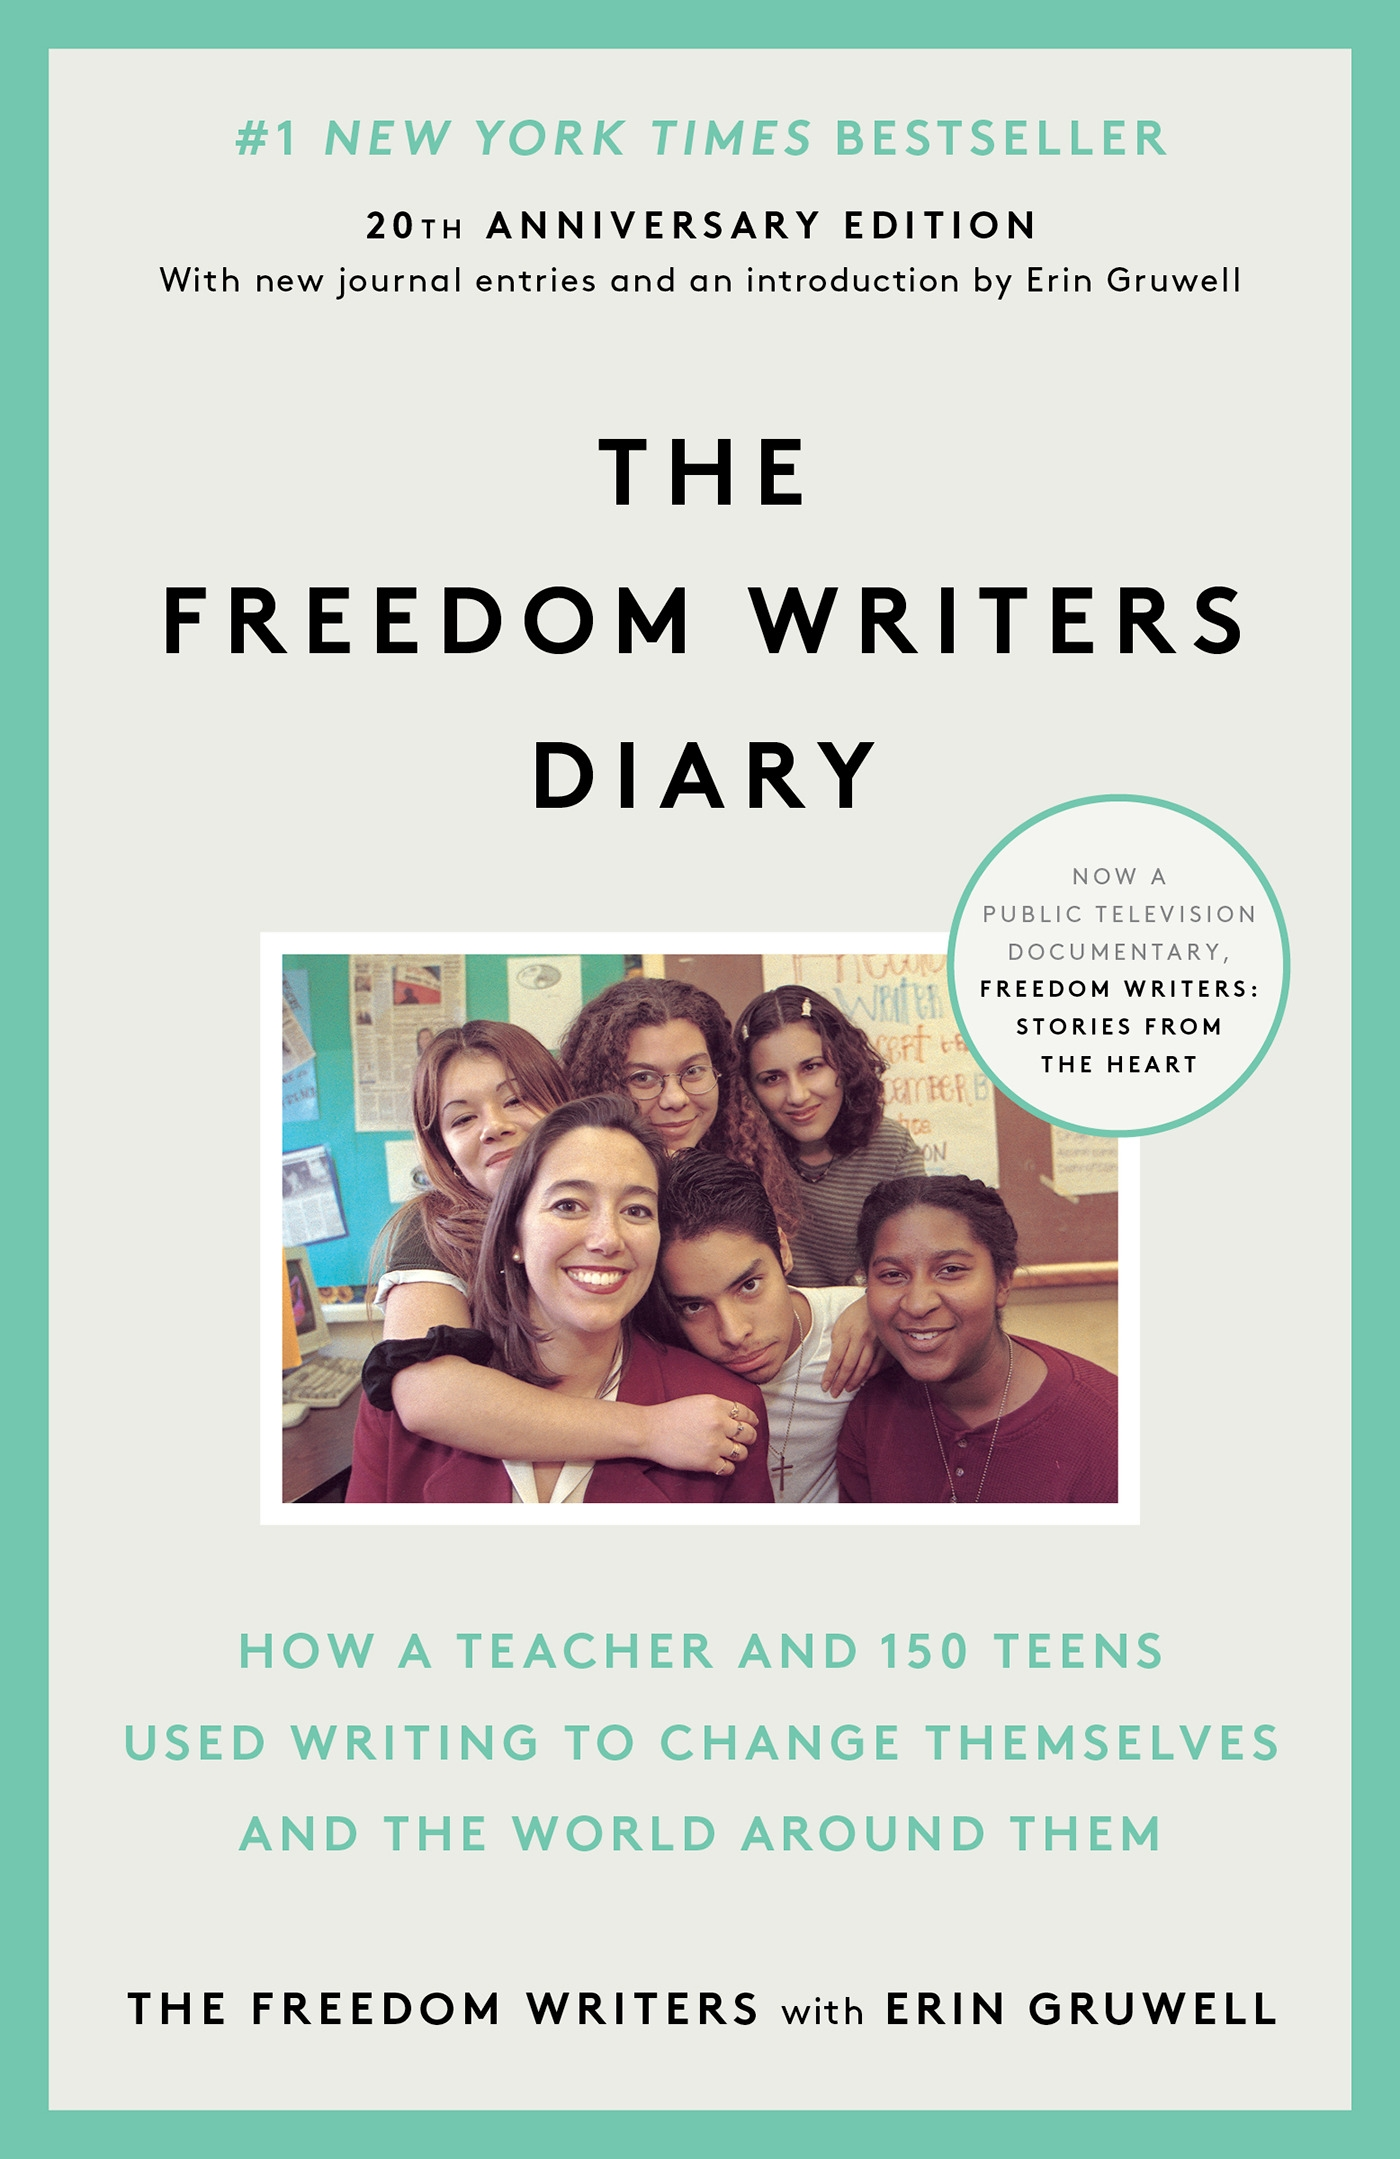 erin gruwell students where are they now